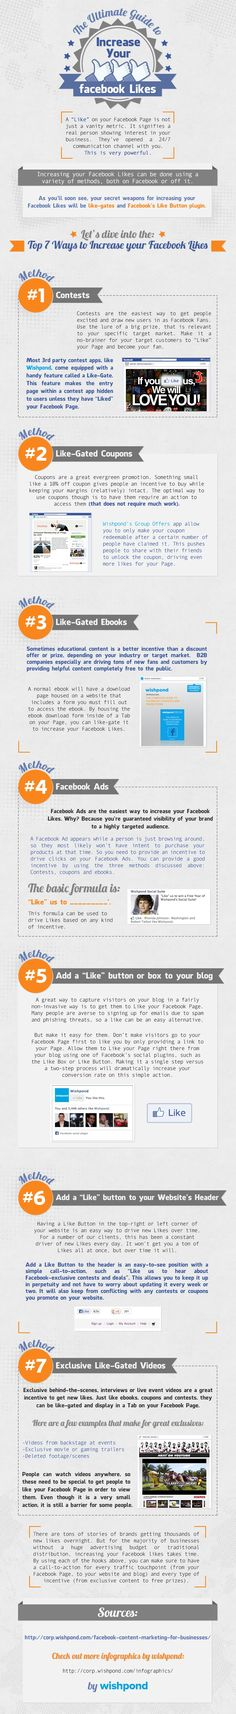 7 Ways To Boost Facebook Likes - Infographic  www.november.media